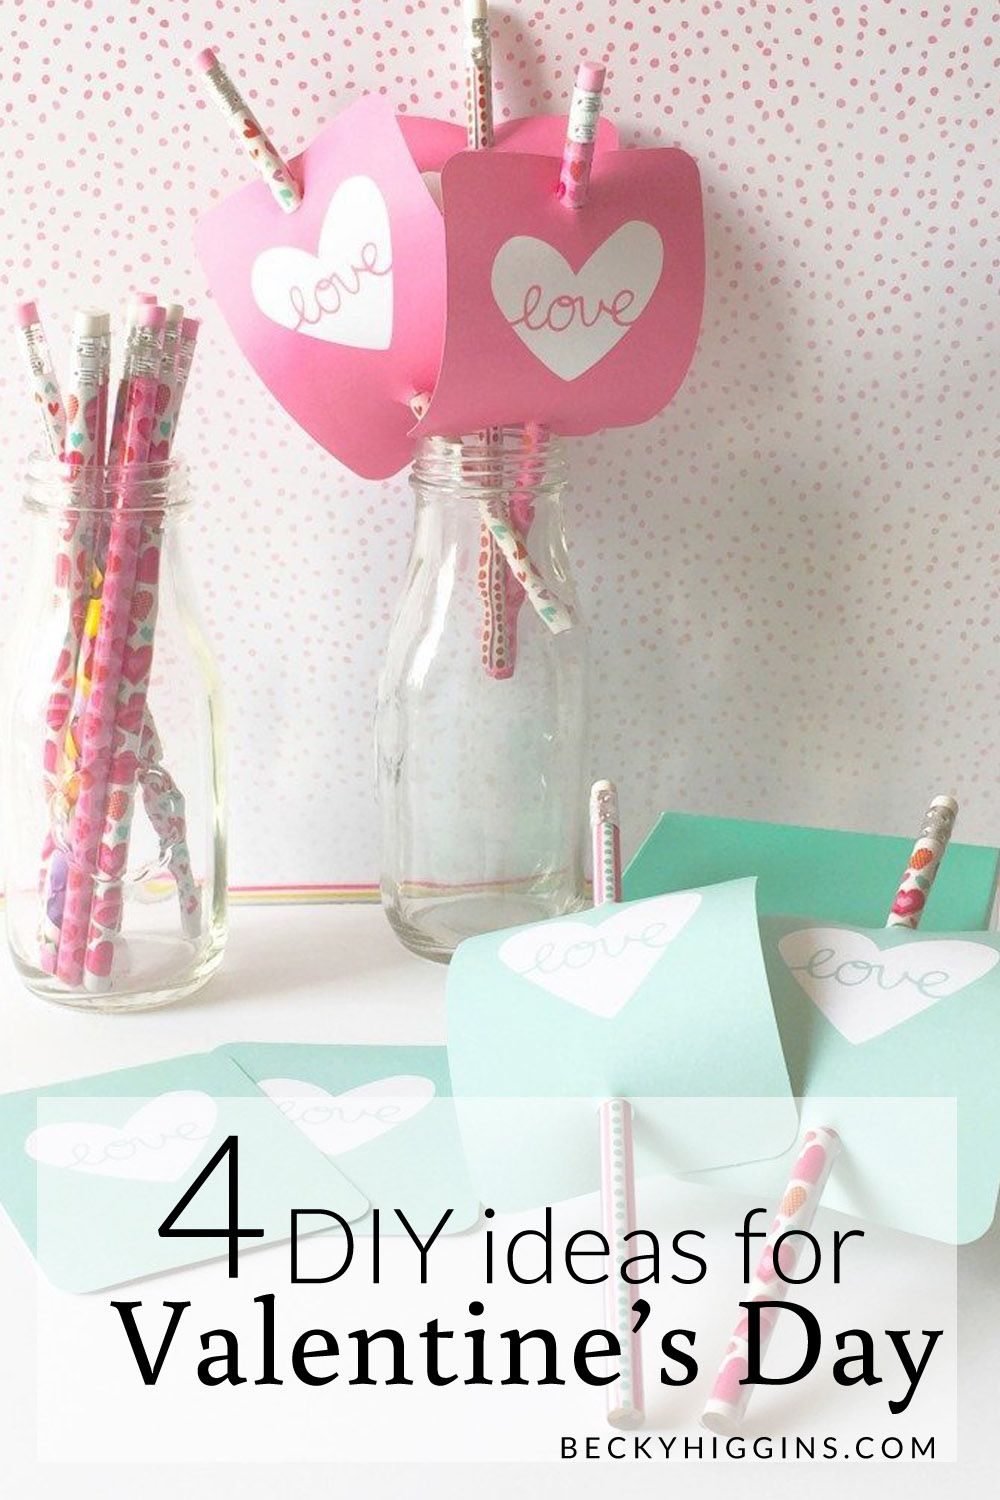 valentine\'s day ideas using project life | Becky higgins, Project ...